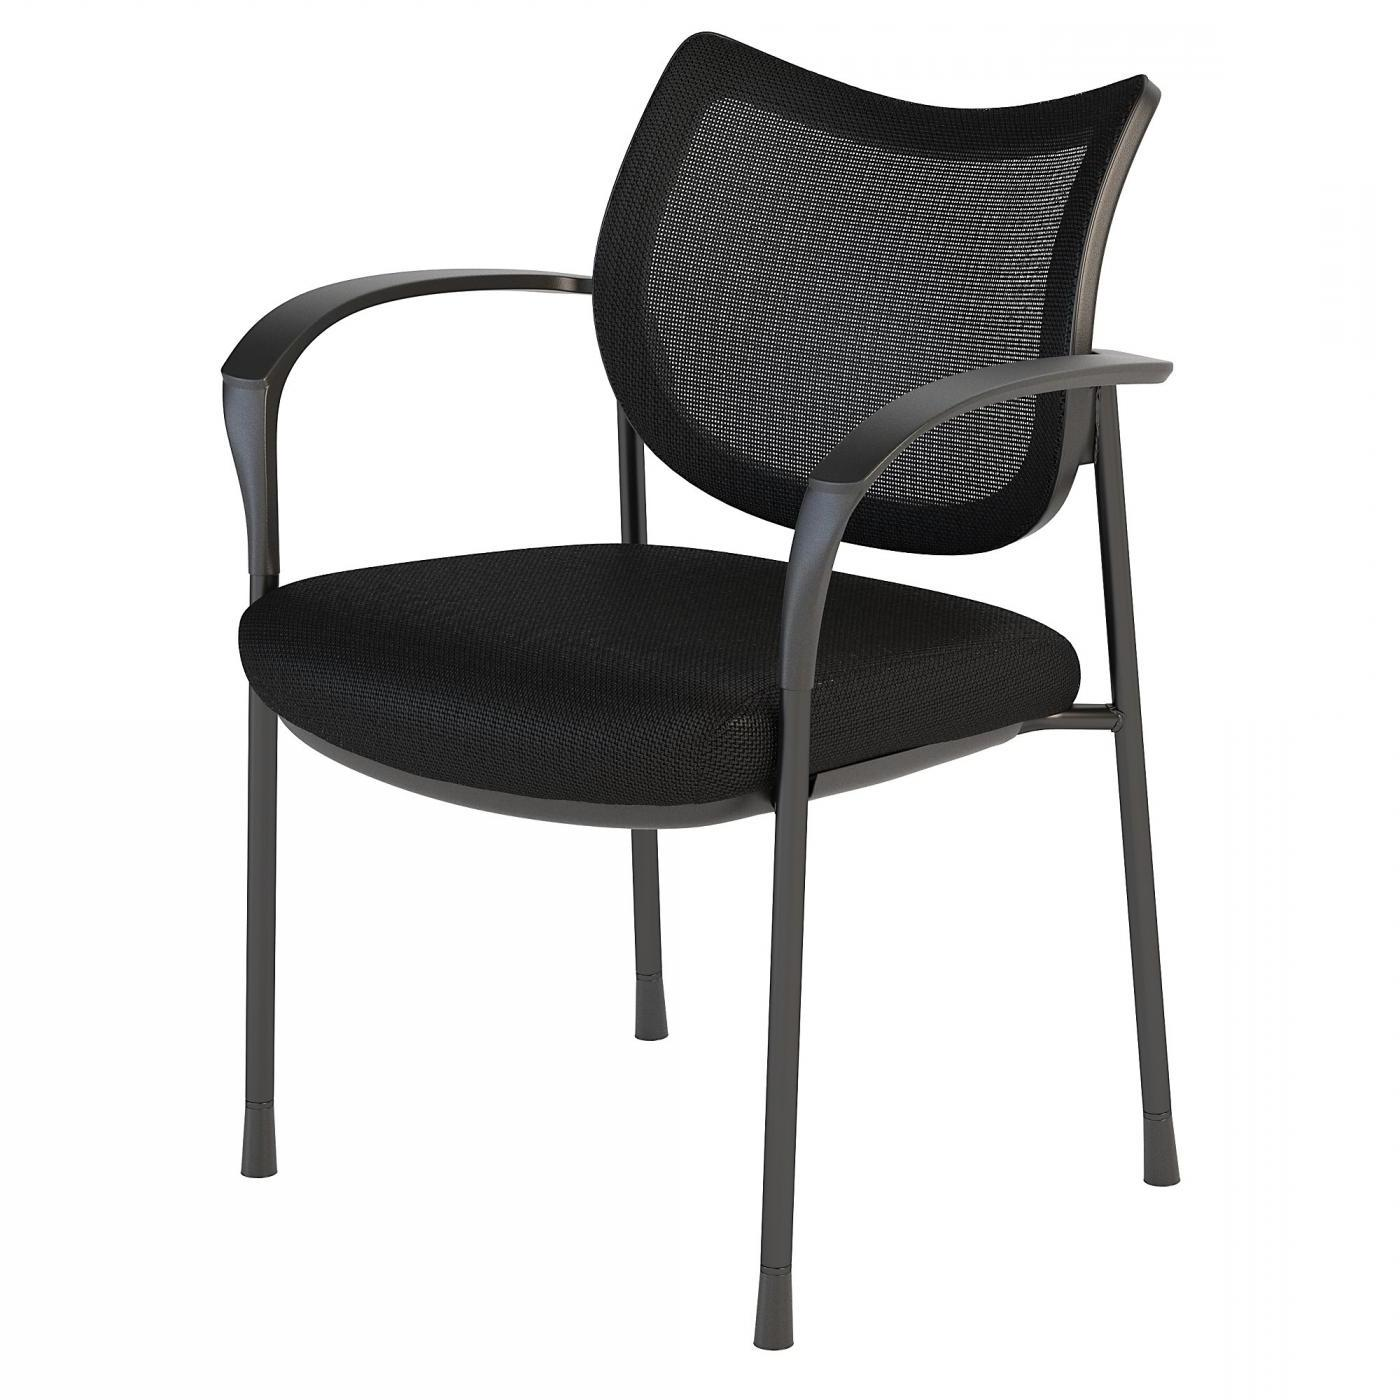 </b></font><b>BUSH BUSINESS FURNITURE CORPORATE MESH BACK GUEST CHAIR. FREE SHIPPING</font>. </b></font></b>